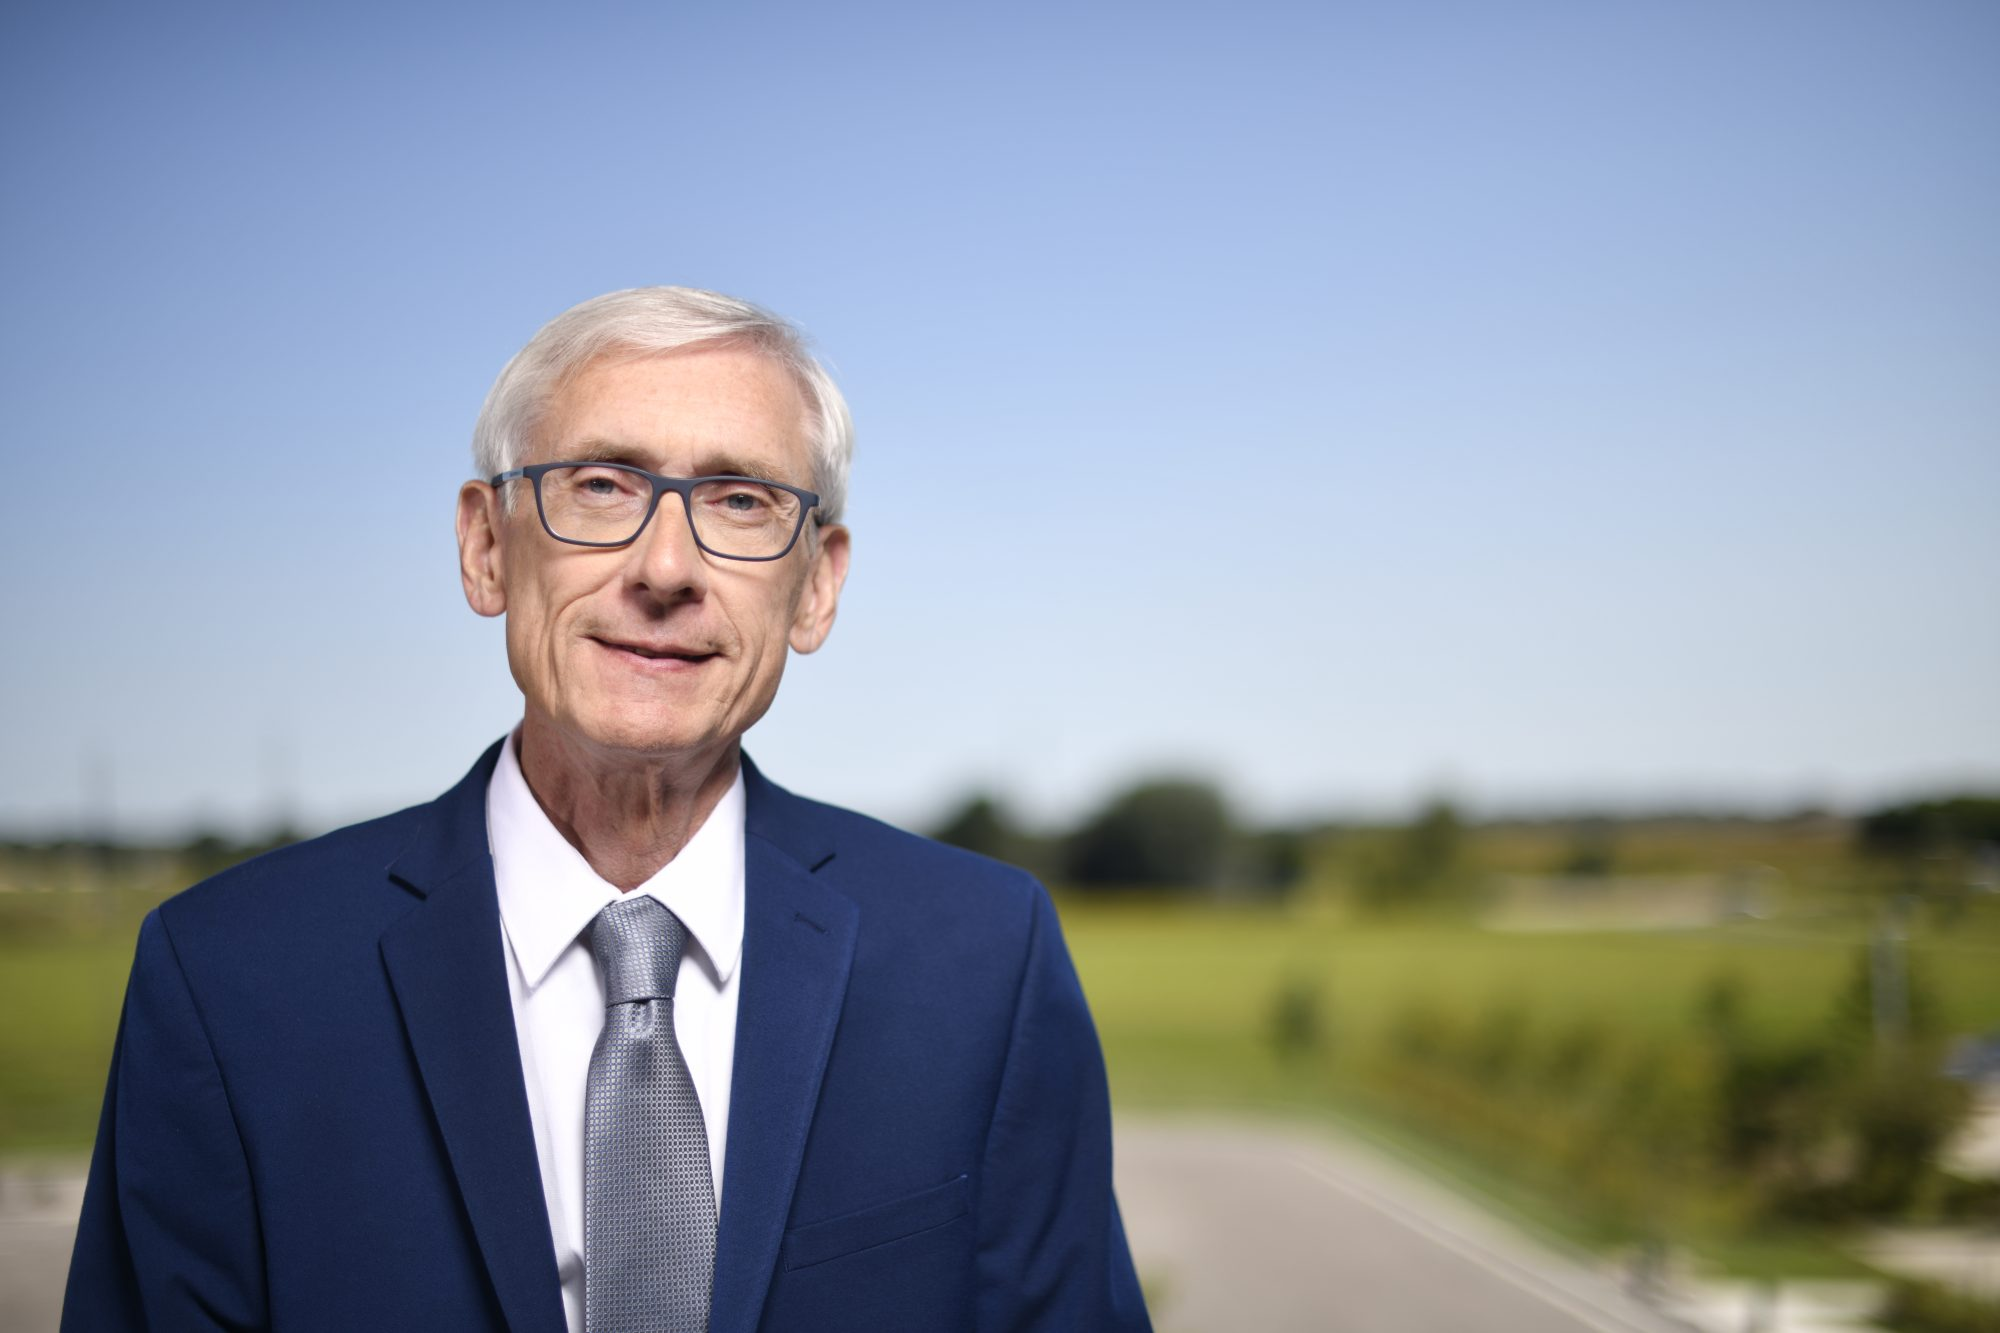 Gov. Evers Releases Statement Regarding Kenosha Shooting